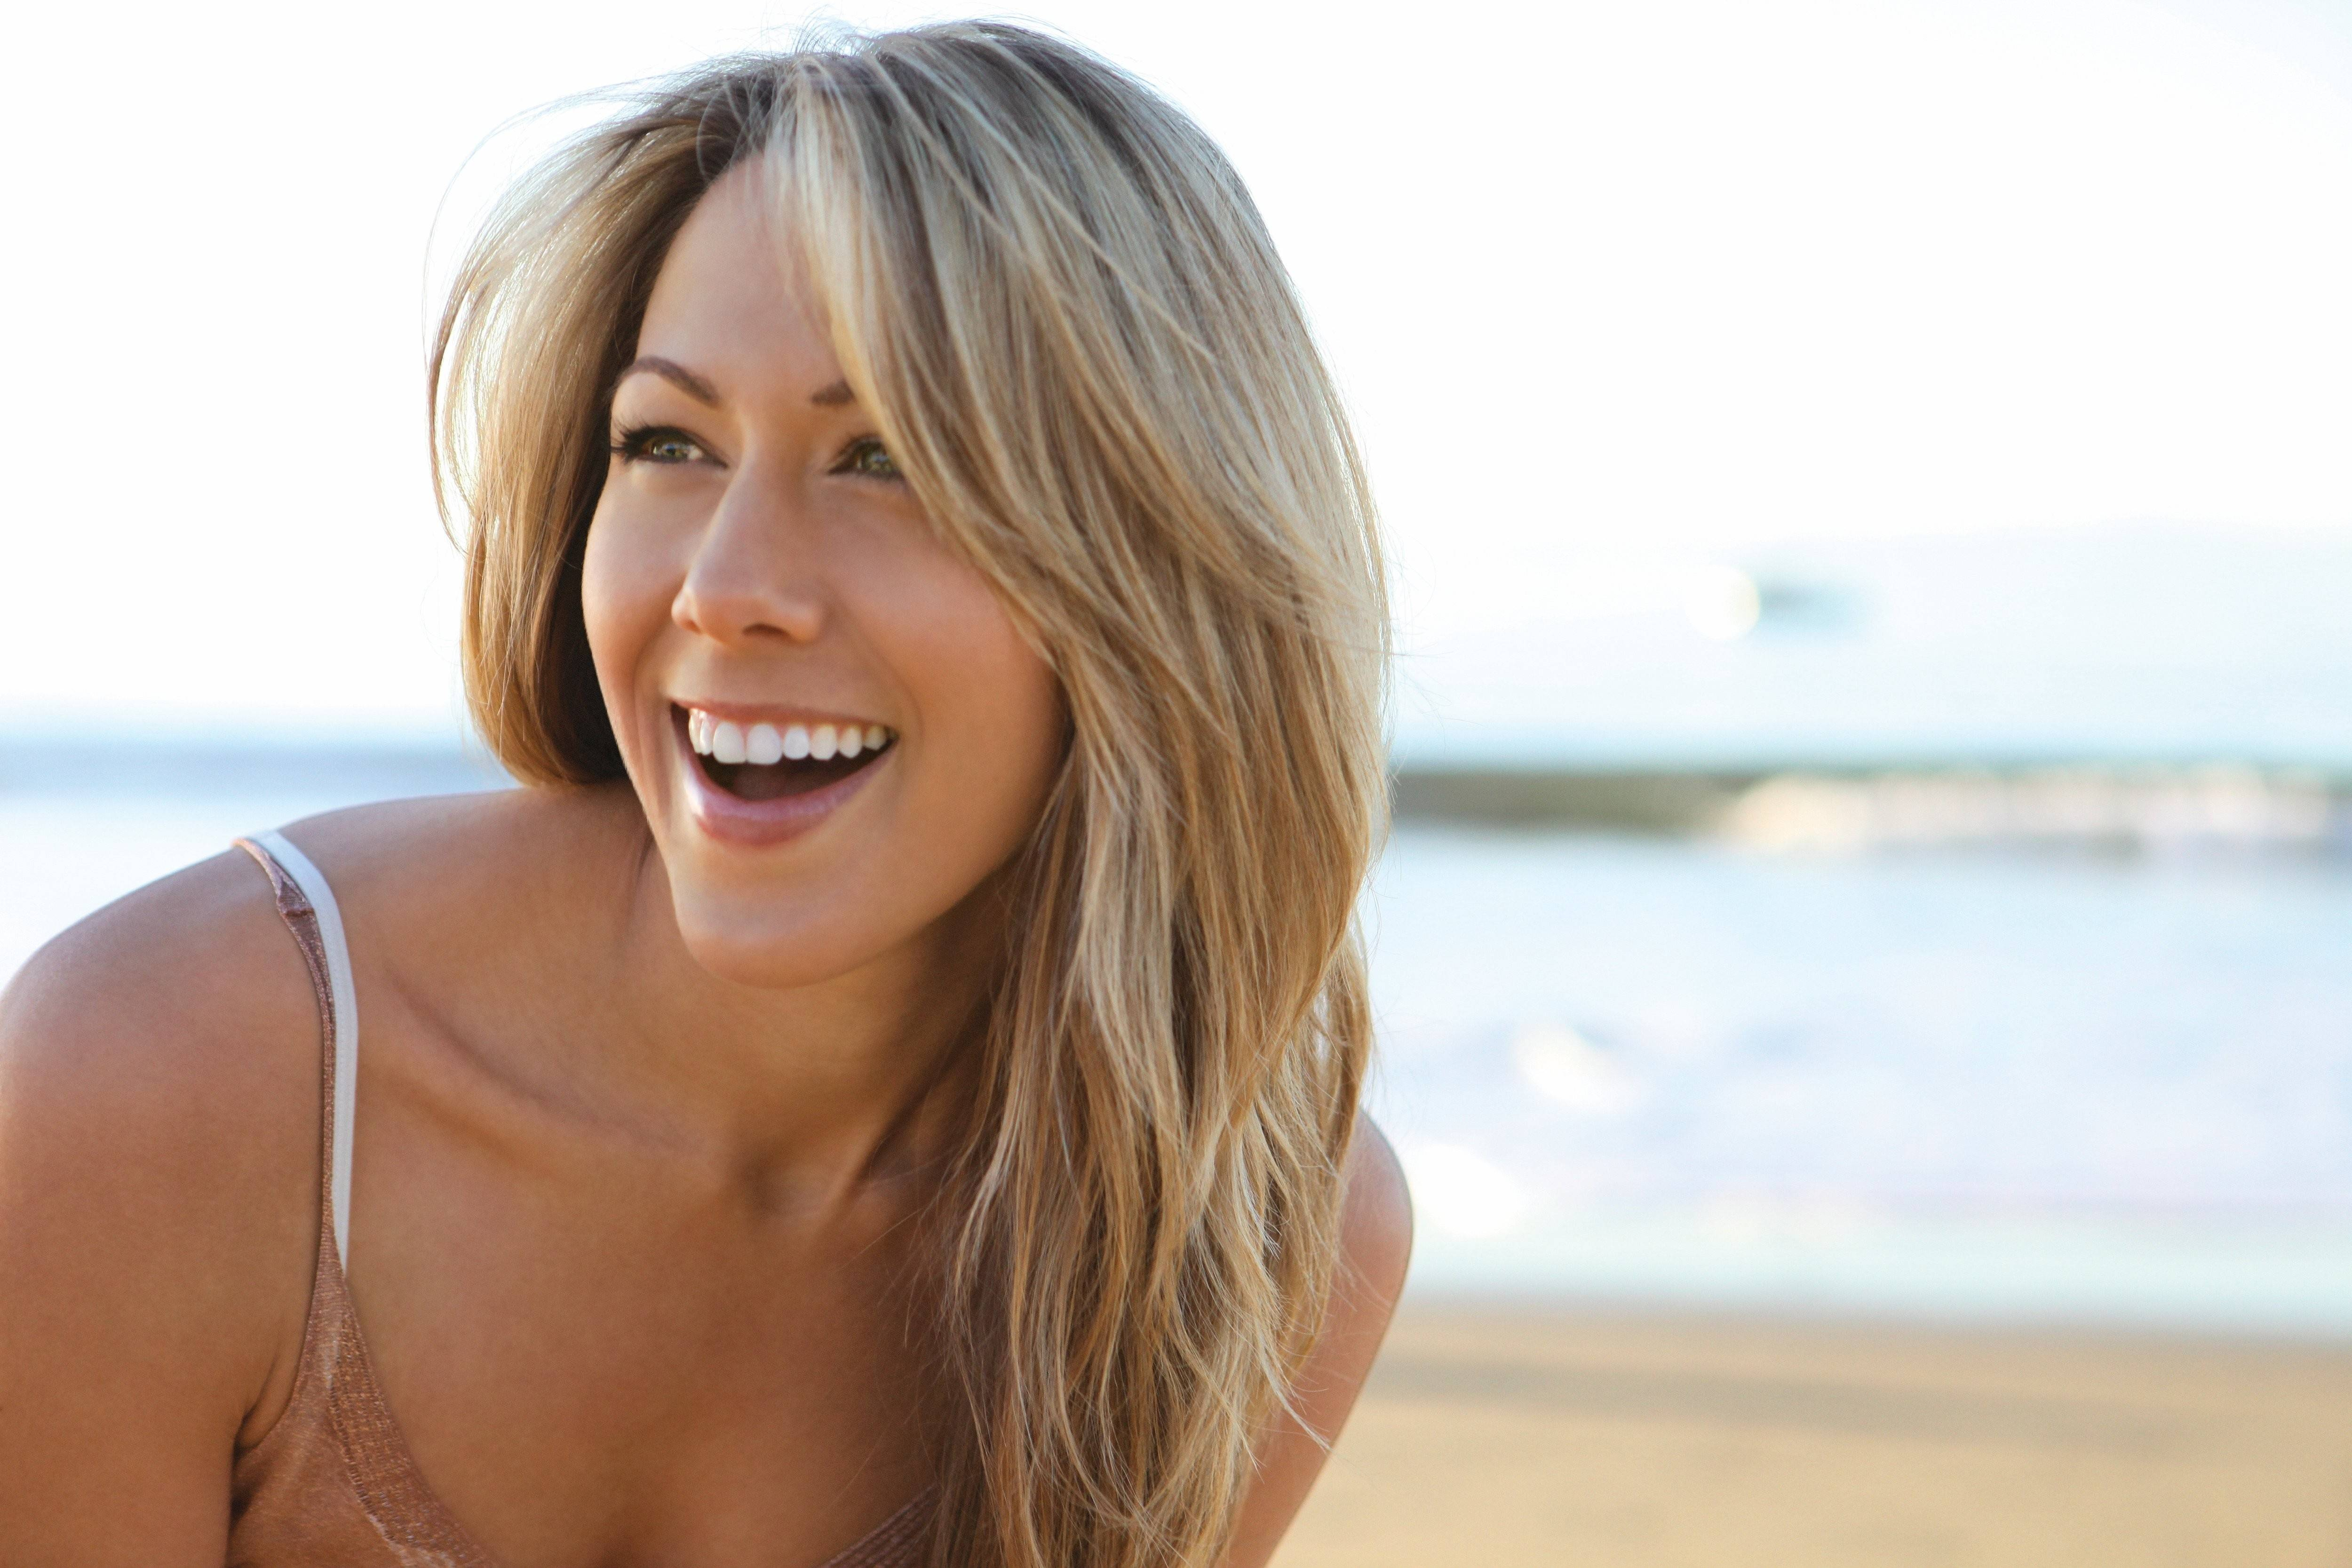 Colbie Caillat will play the McAninch Arts Center in Glen Ellyn on Friday, Aug. 29